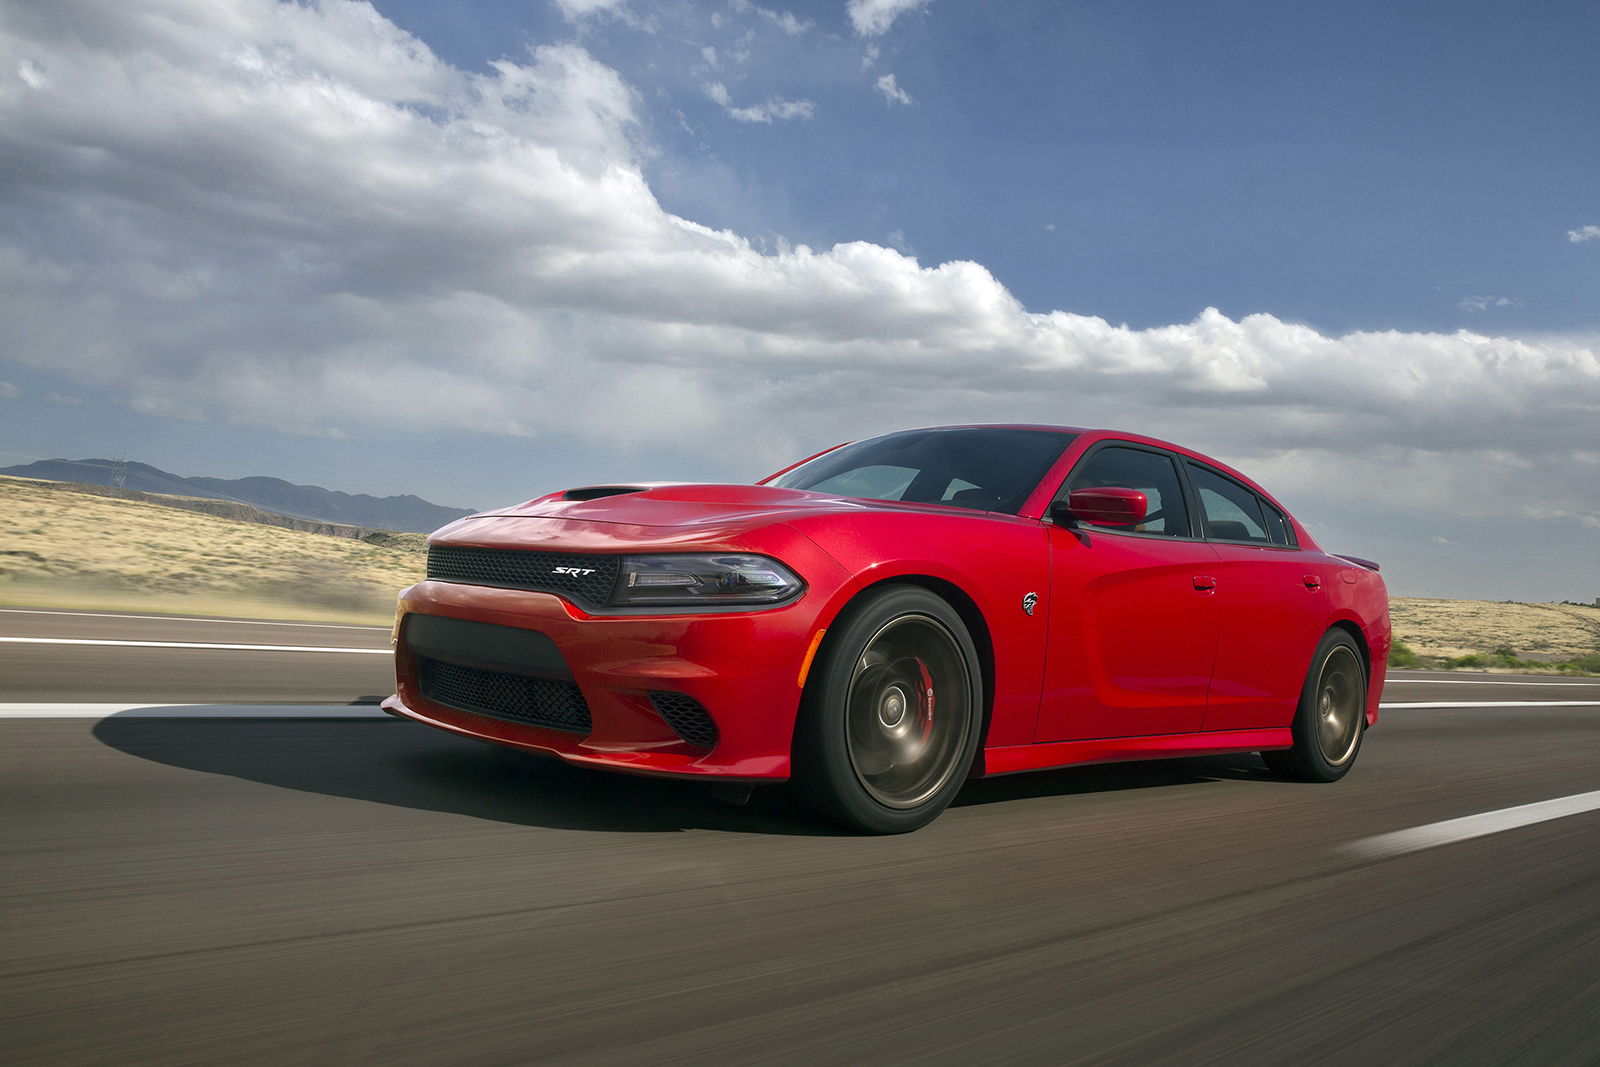 2017 Dodge Charger Facts Revealed